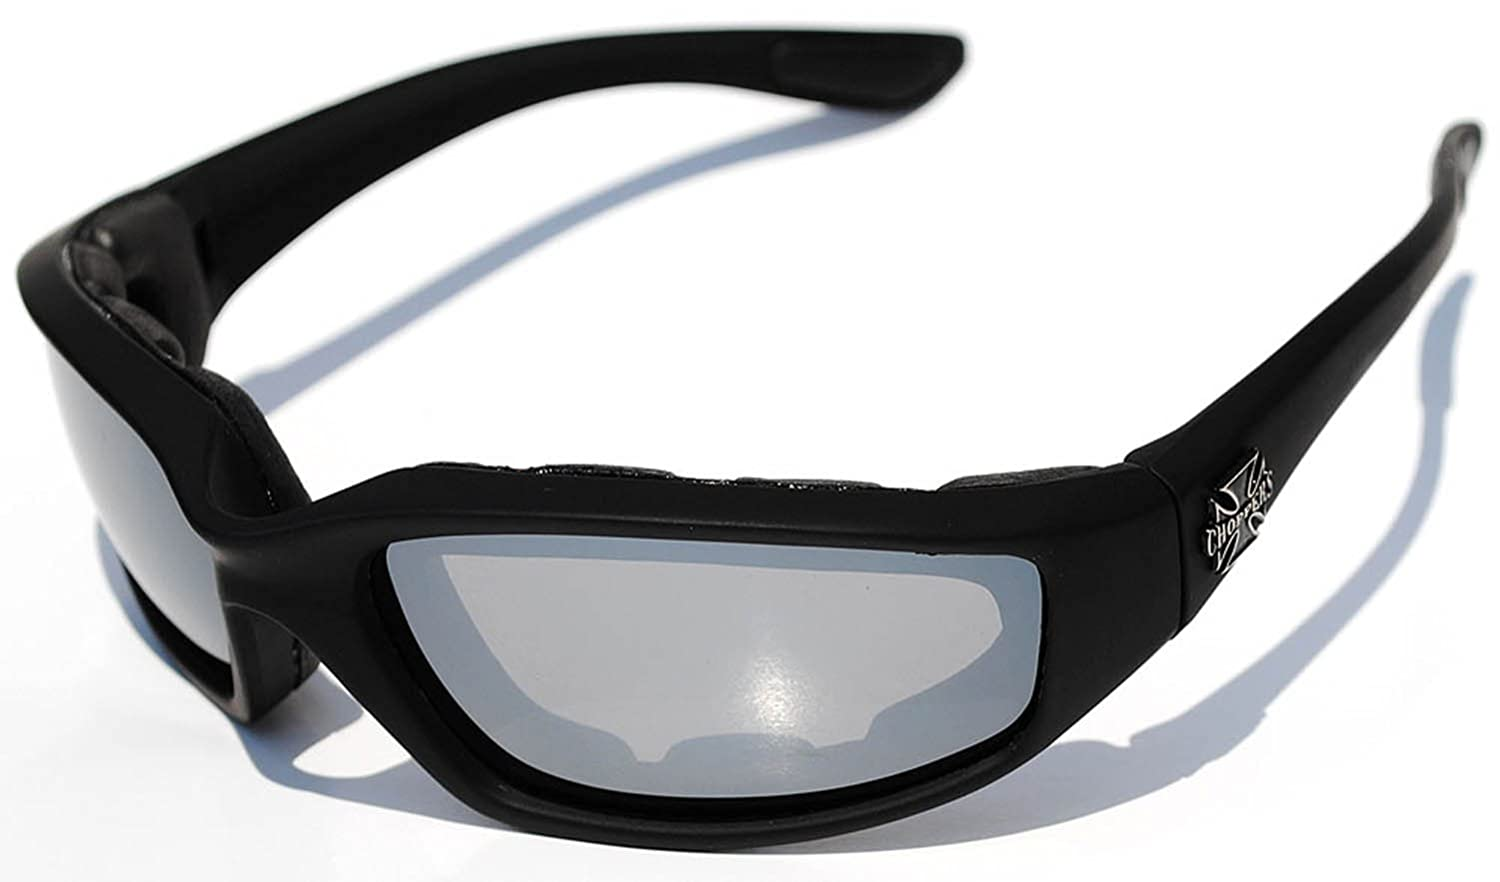 b5f01f9cc0 Amazon.com  Night Driving Riding Padded Motorcycle Glasses 011 Black Frame  with Yellow Lenses (Black - Amber Lens)  Clothing